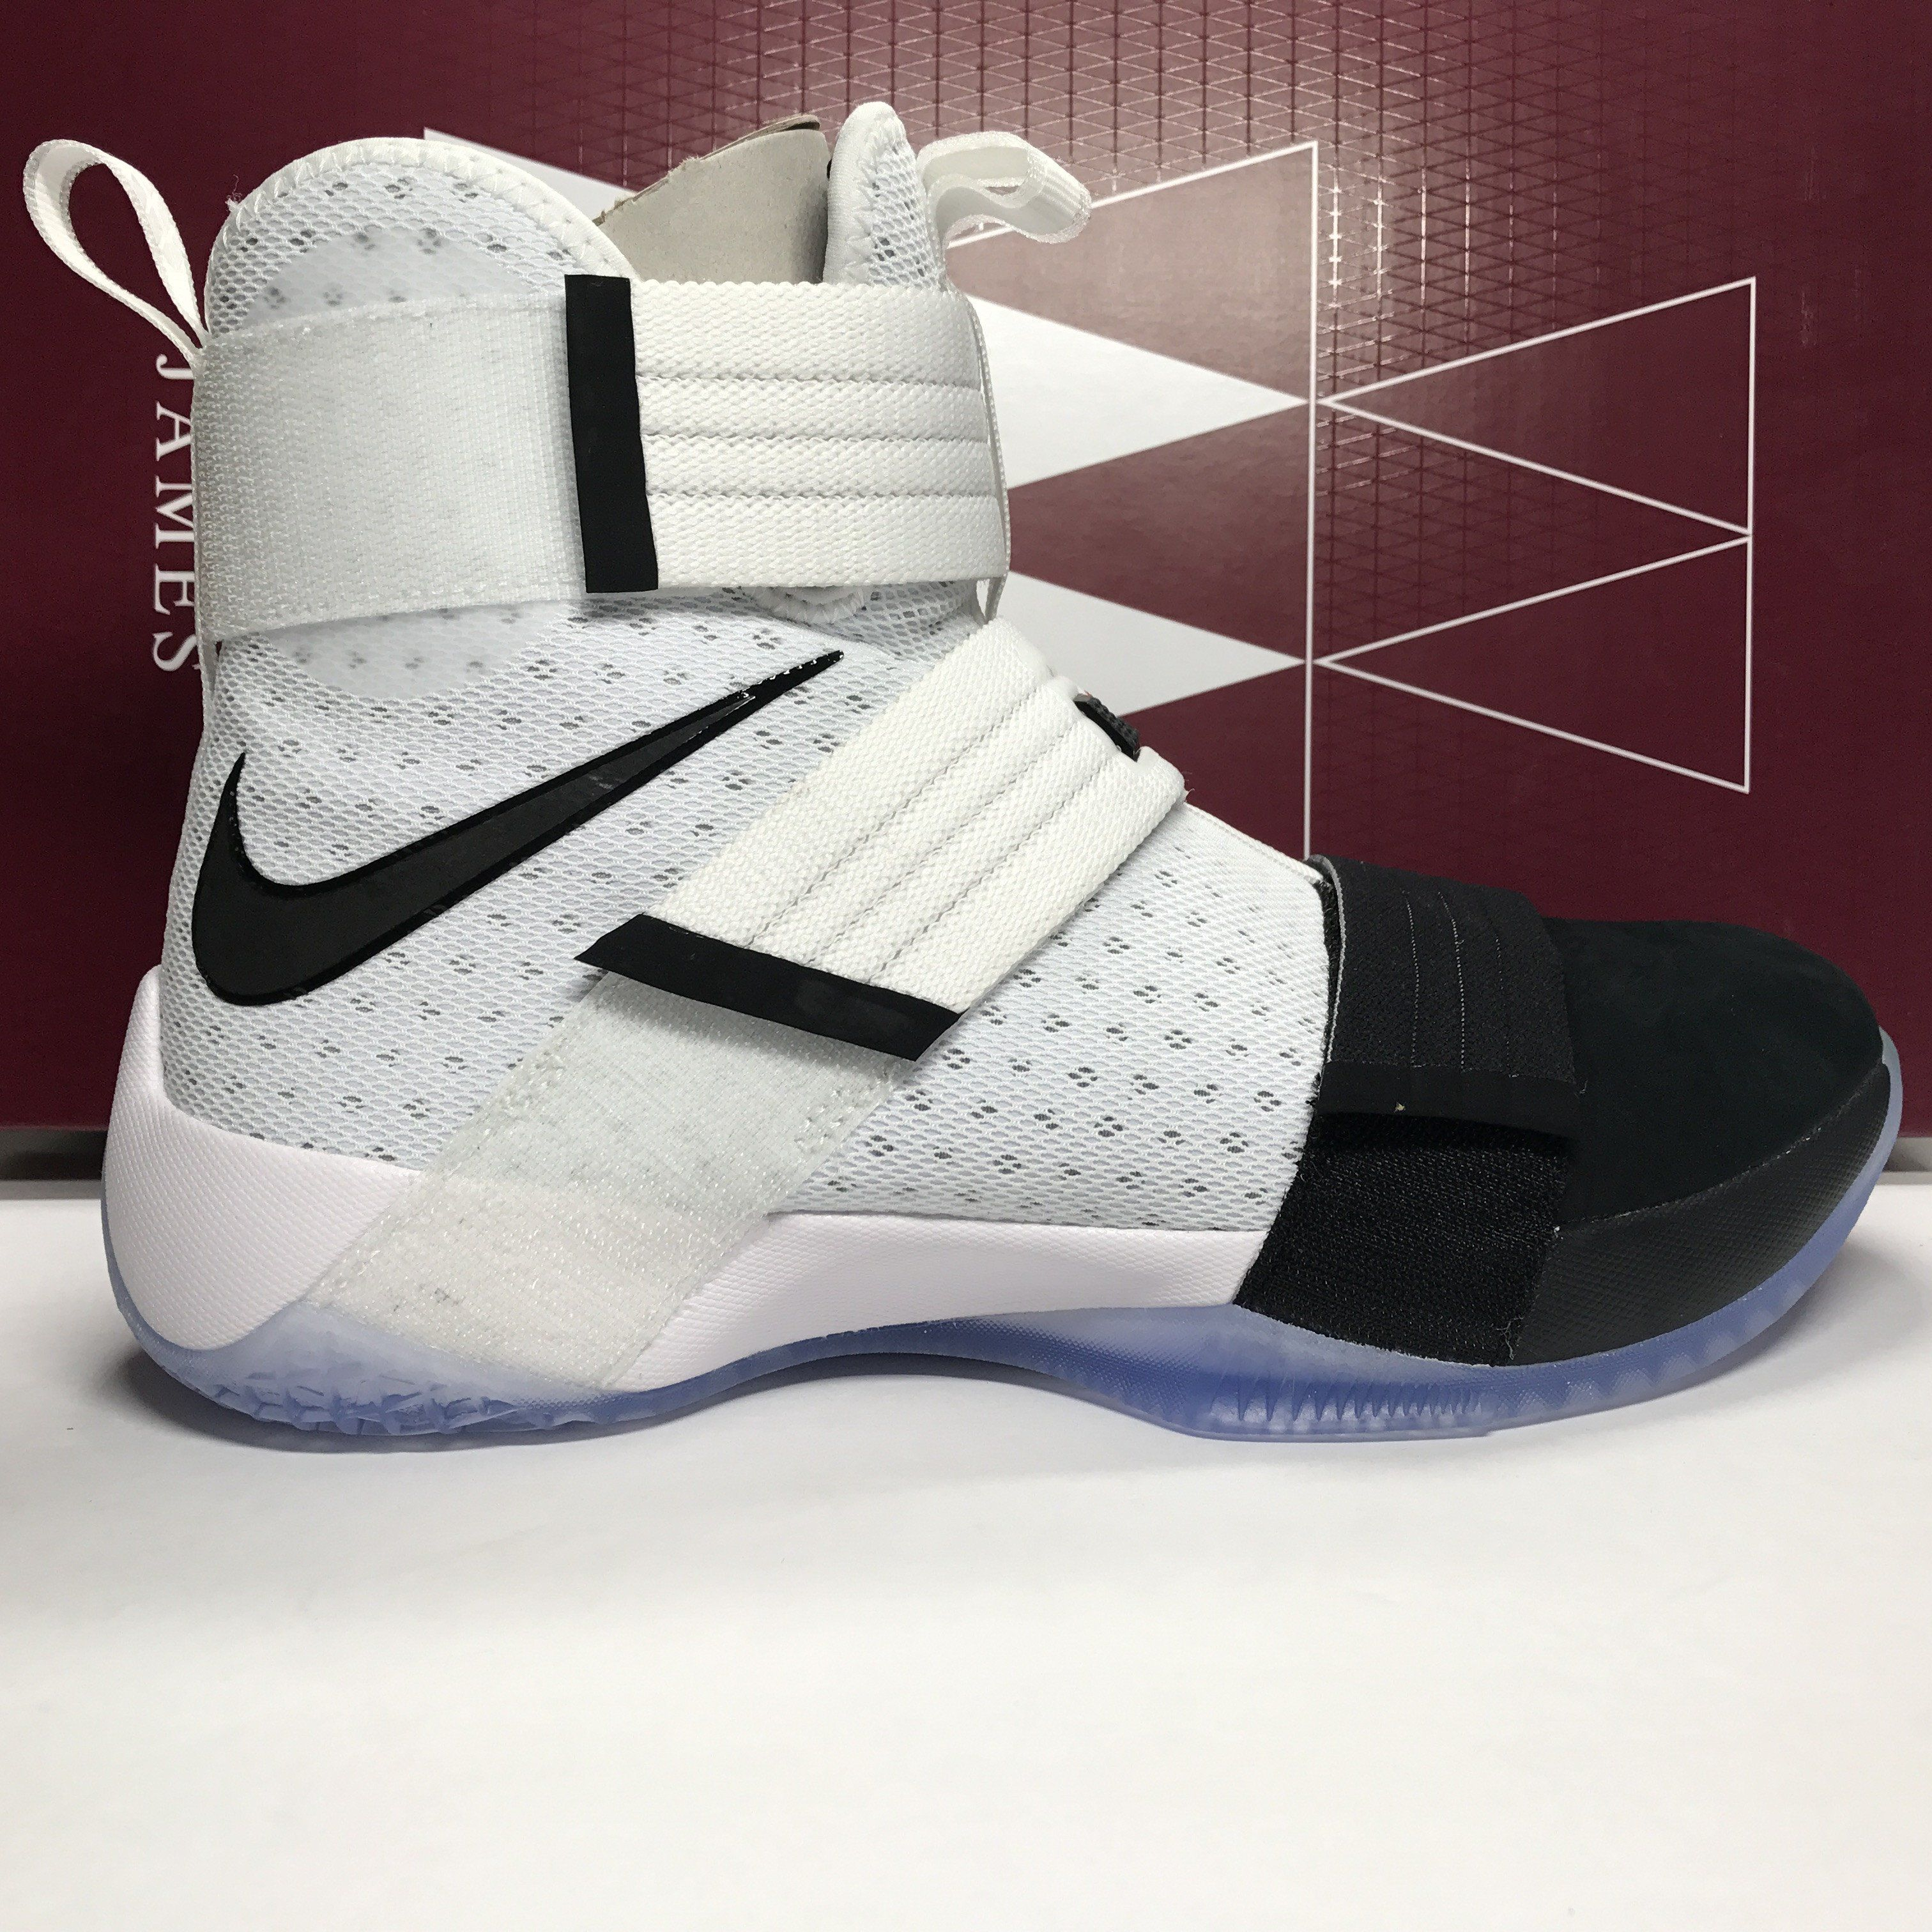 96912c4cf99e ... get ds nike lebron soldier 10 spg white black size 9.5 size 10 aef42  58317